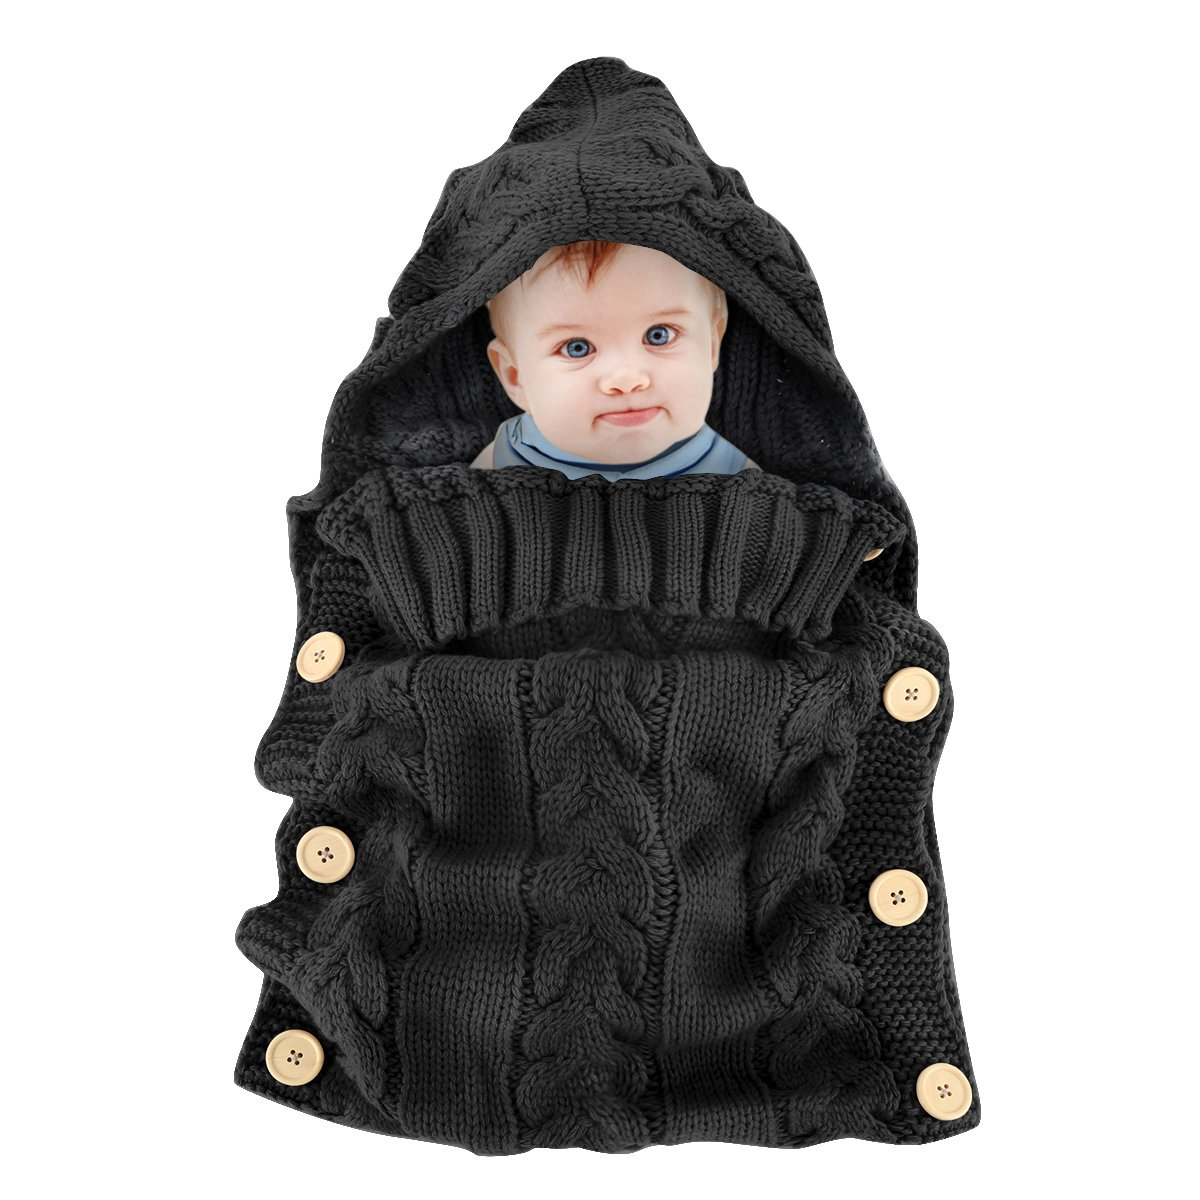 Colorful Newborn Baby Wrap Swaddle Blanket, Oenbopo Baby Kids Toddler Knit Blanket Swaddle Sleeping Bag Stroller Wrap for 0-12 Month Baby (Black)